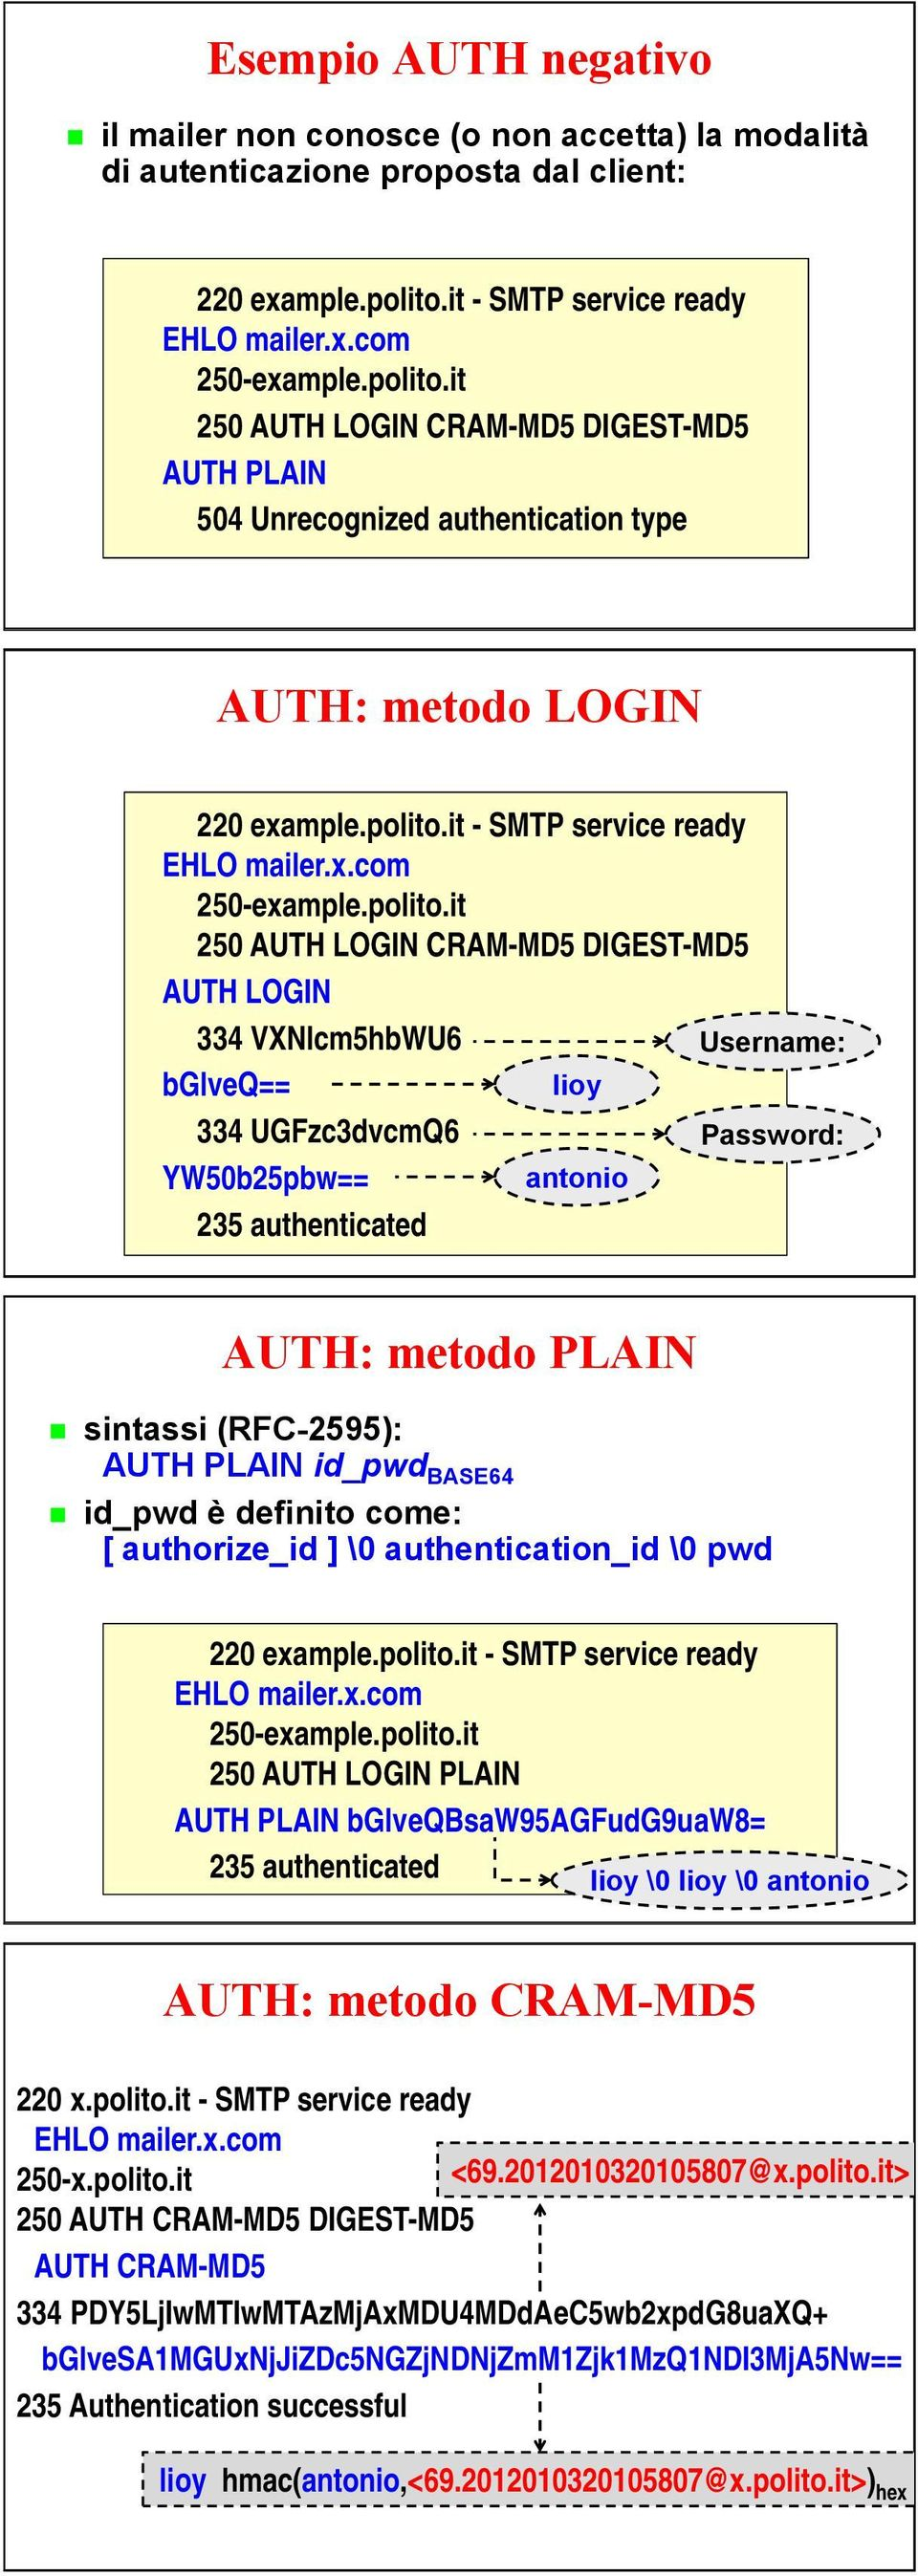 polito.it - service ready EHLO mailer.x.com 250-example.polito.it 250 AUTH: LOGIN metodo CRAM-MD5 LOGIN DIGEST-MD5 AUTH LOGIN 220 334 VXNlcm5hbWU6 example.polito.it - service ready Username: EHLO bglveq== mailer.